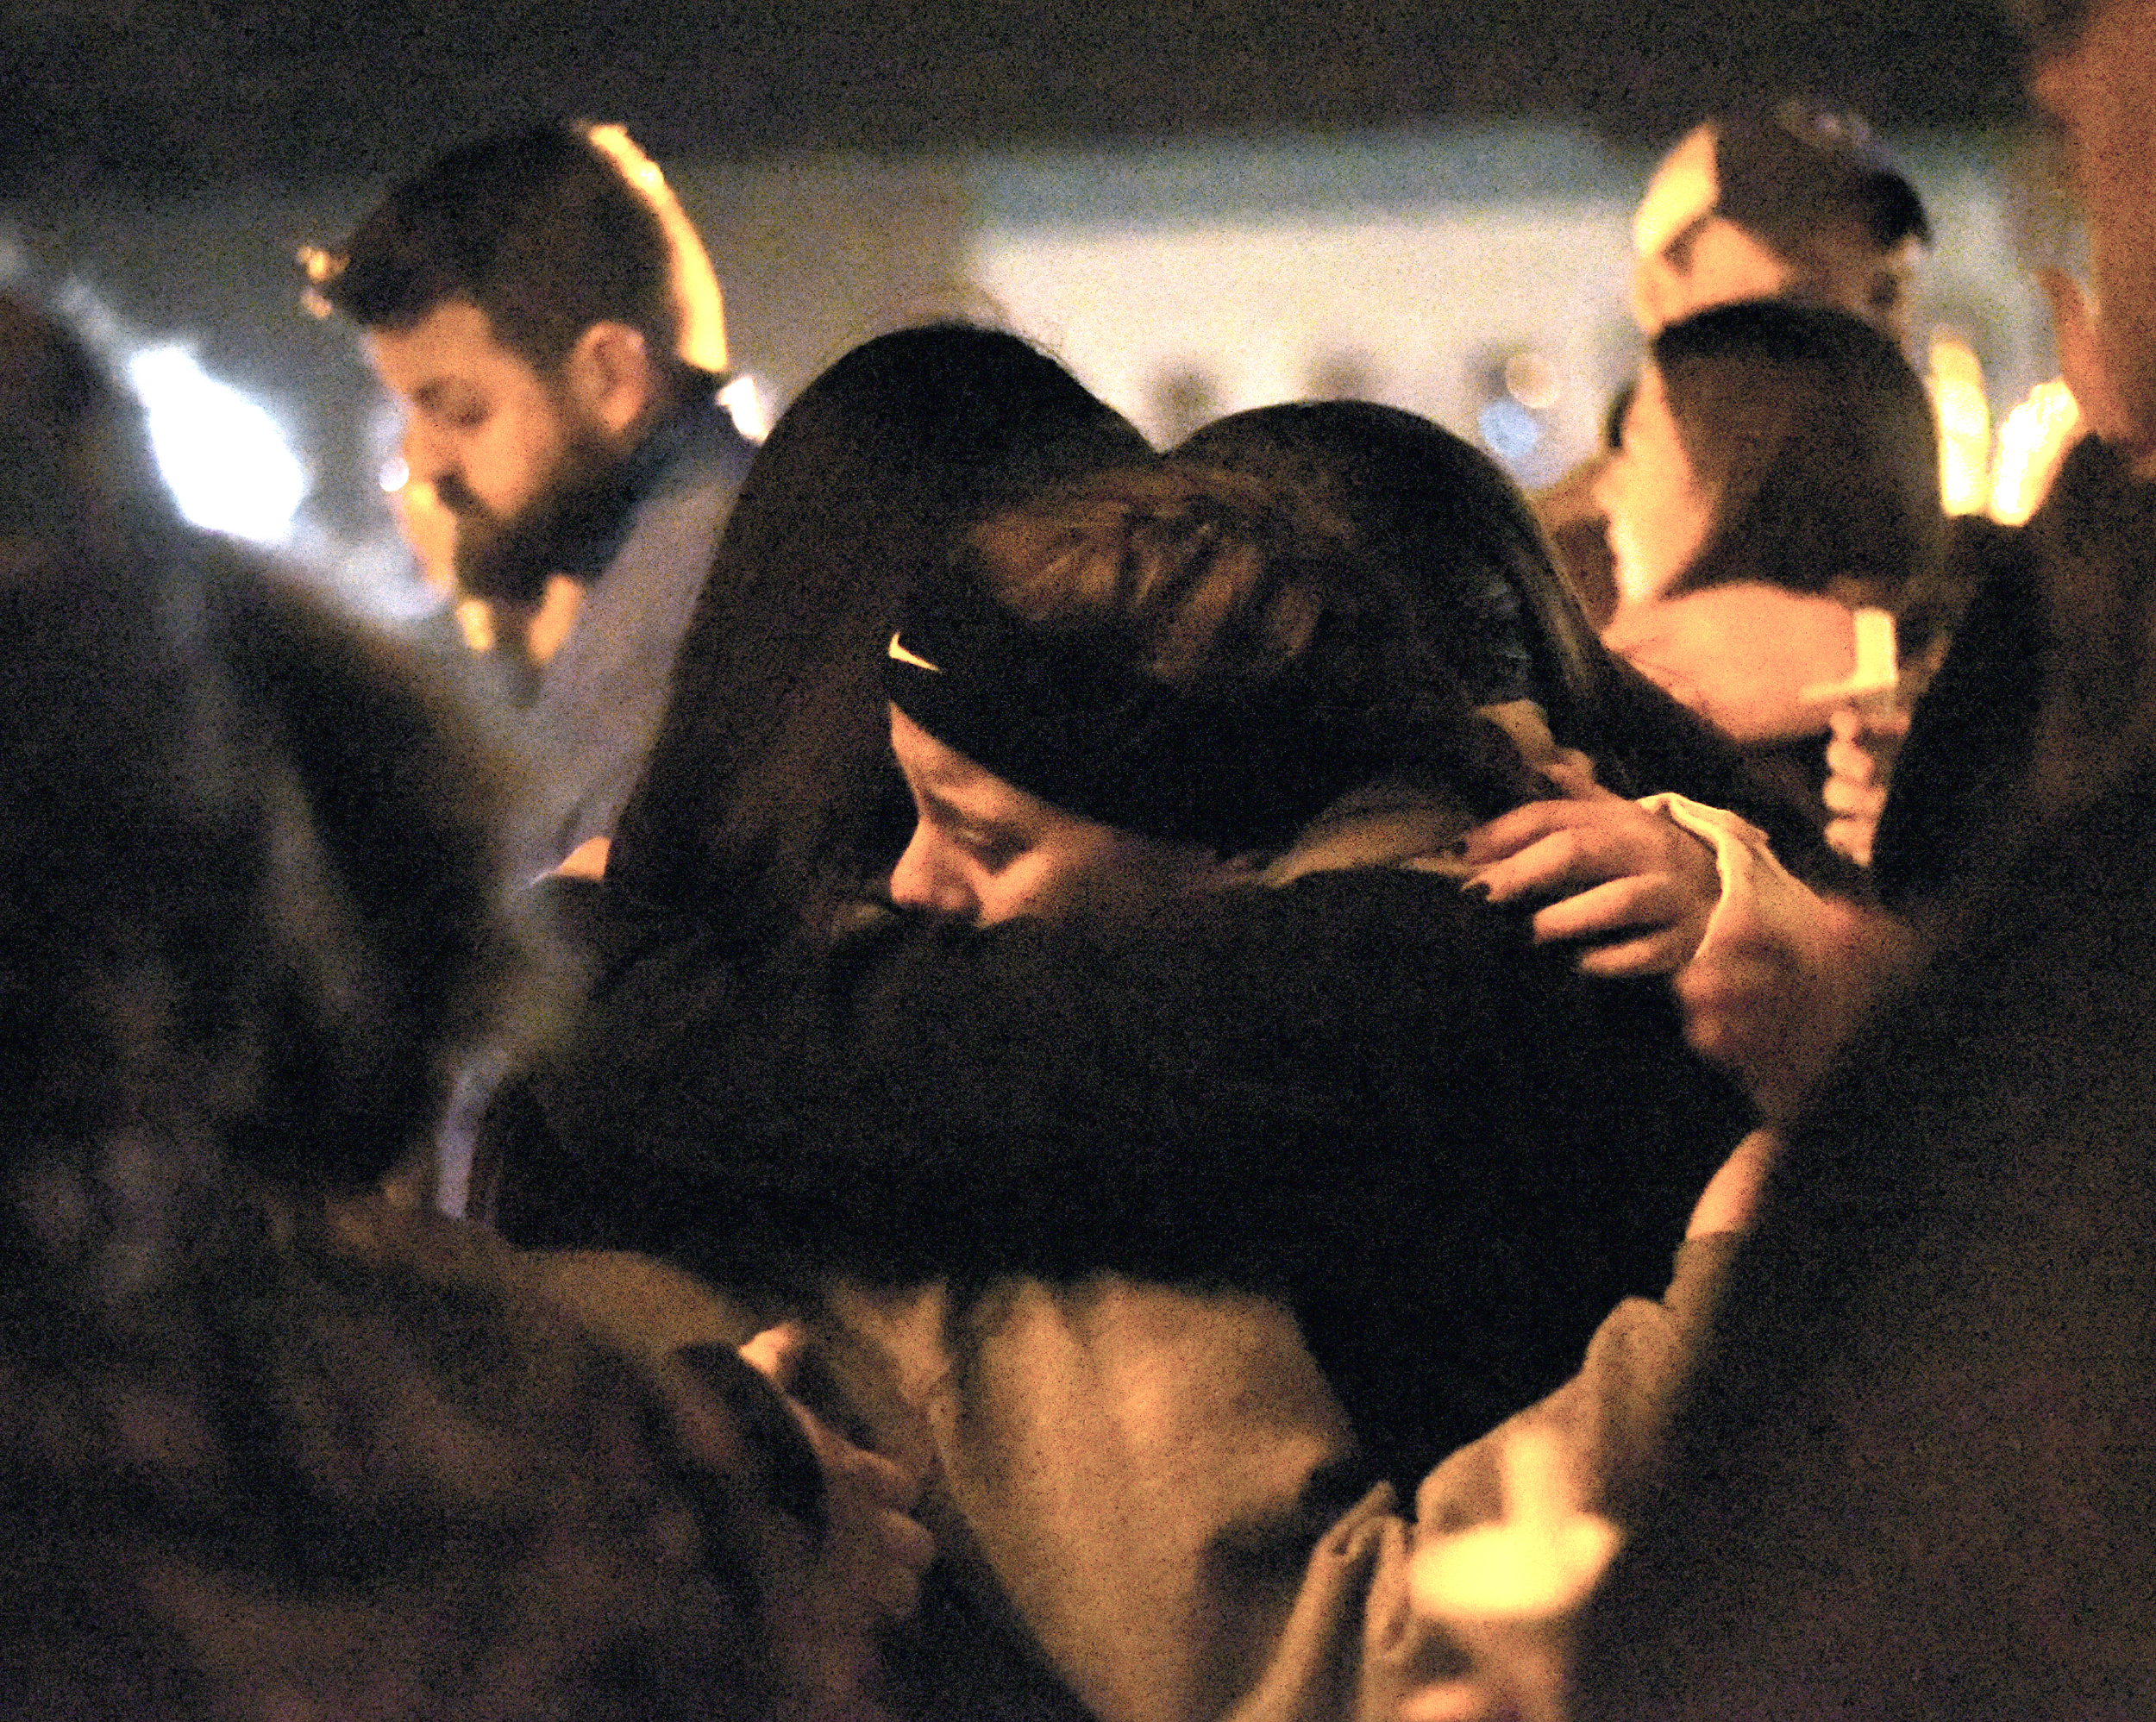 Monroe High School students console each other during a candlelight vigil for three students who died in a car crash, at the Courthouse Feb. 11, 2017.